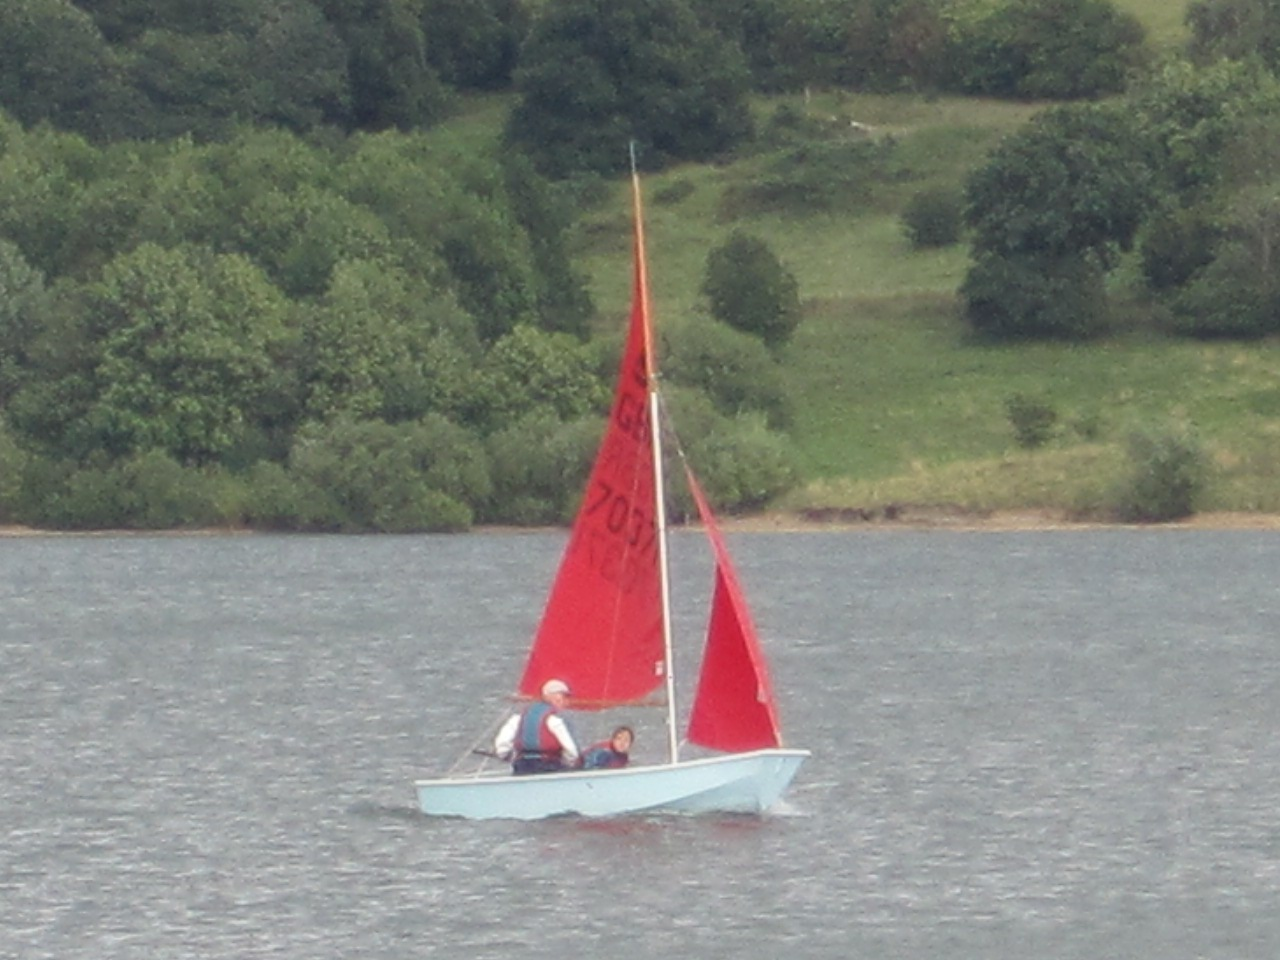 A light blue Mirror dinghy sailing on a lake with trees in the background